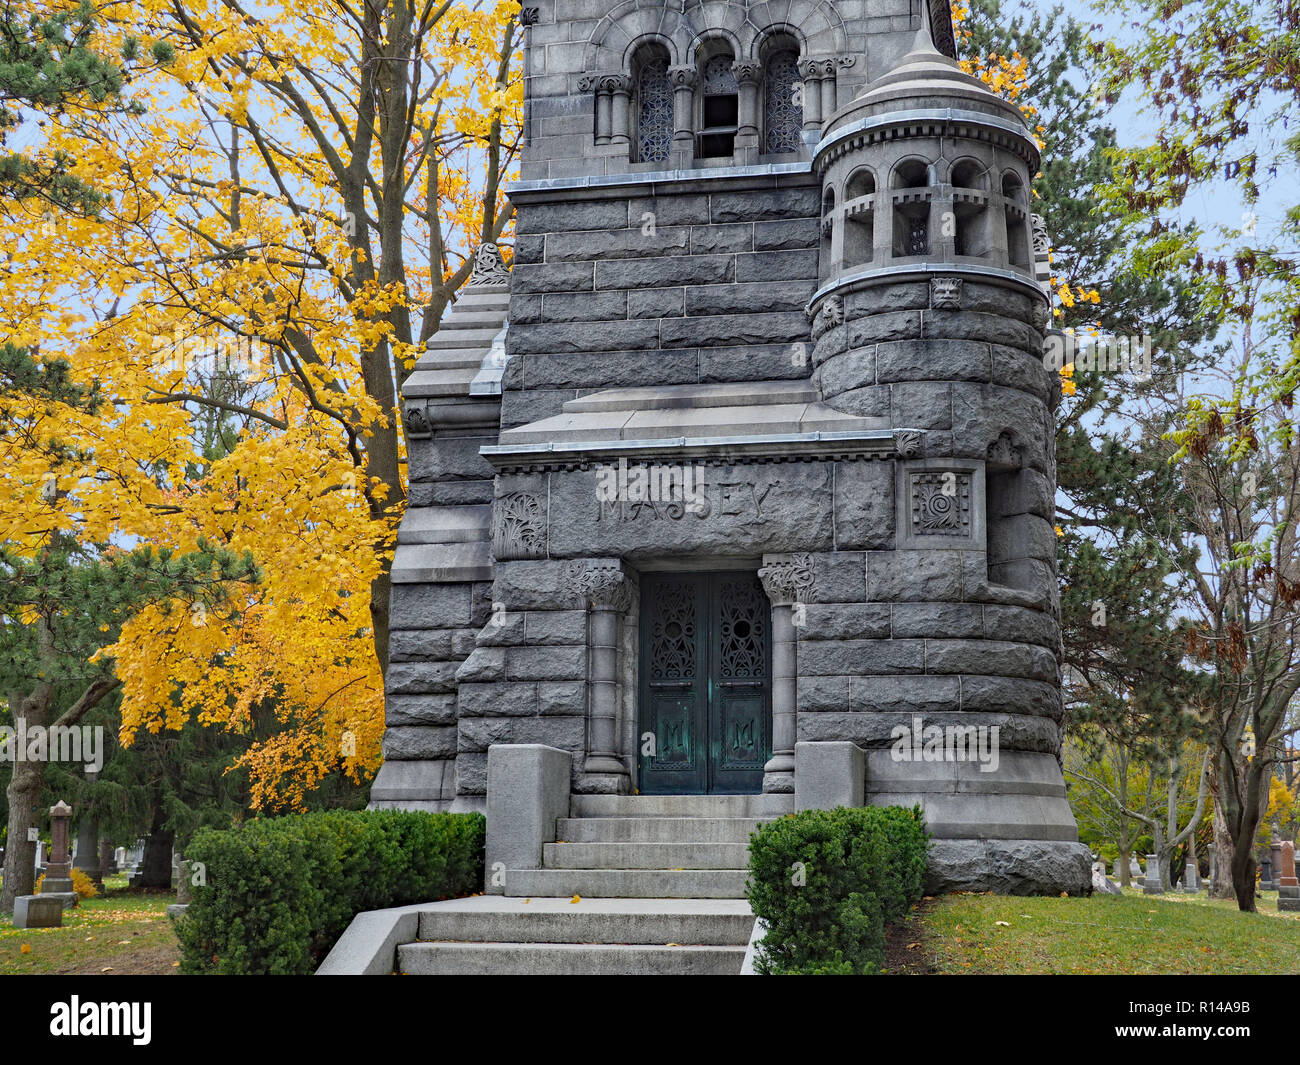 Mount Pleasant Cemetery is an old cemetery in a park-like setting with mature trees and some large family mausoleums. Massey Family Mausoleum. - Stock Image